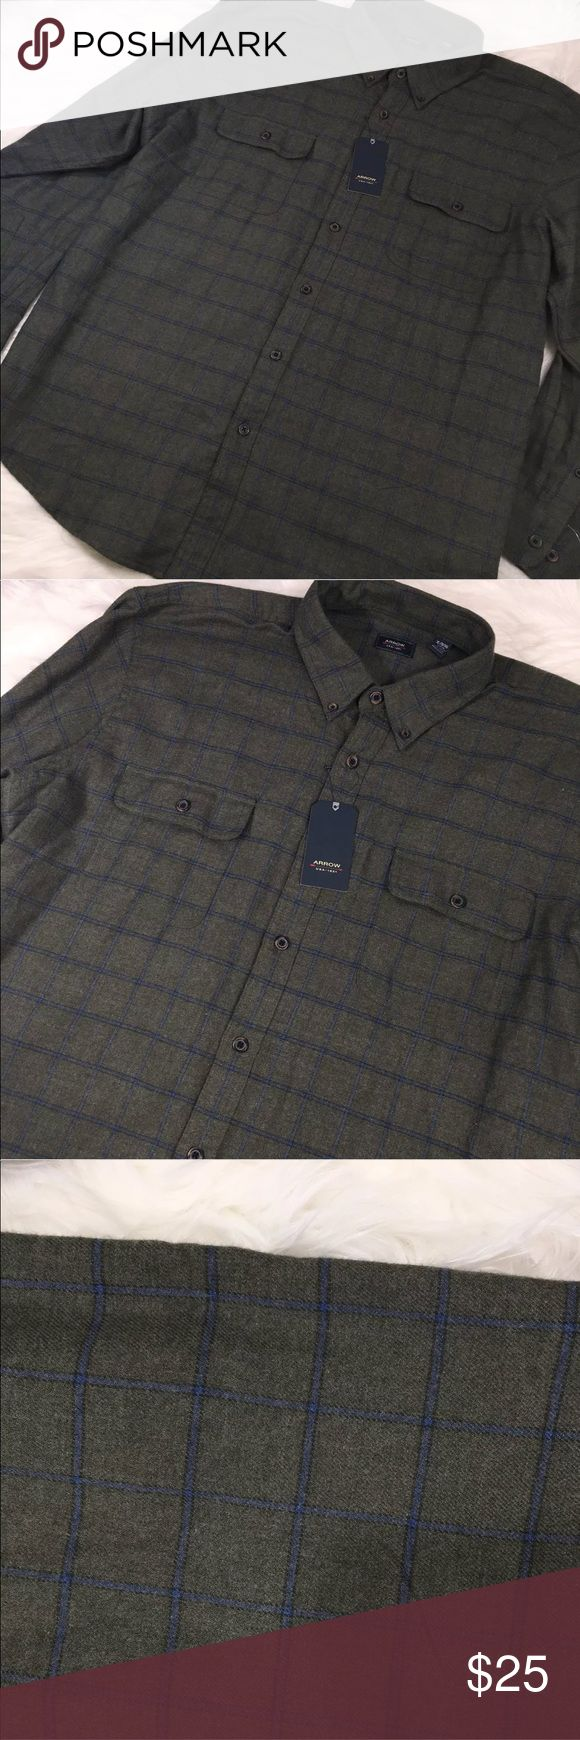 "NWT Arrow Plaid Shirt Button Down Green Check out my other listings! Bundle and save! New with tags. No flaws. Comes from smoke- free/ pet free  environment. Size: XL Length: 31.5"" Underarm to underarm: 26"" Material: Cotton/Polyester Arrow Shirts Casual Button Down Shirts"